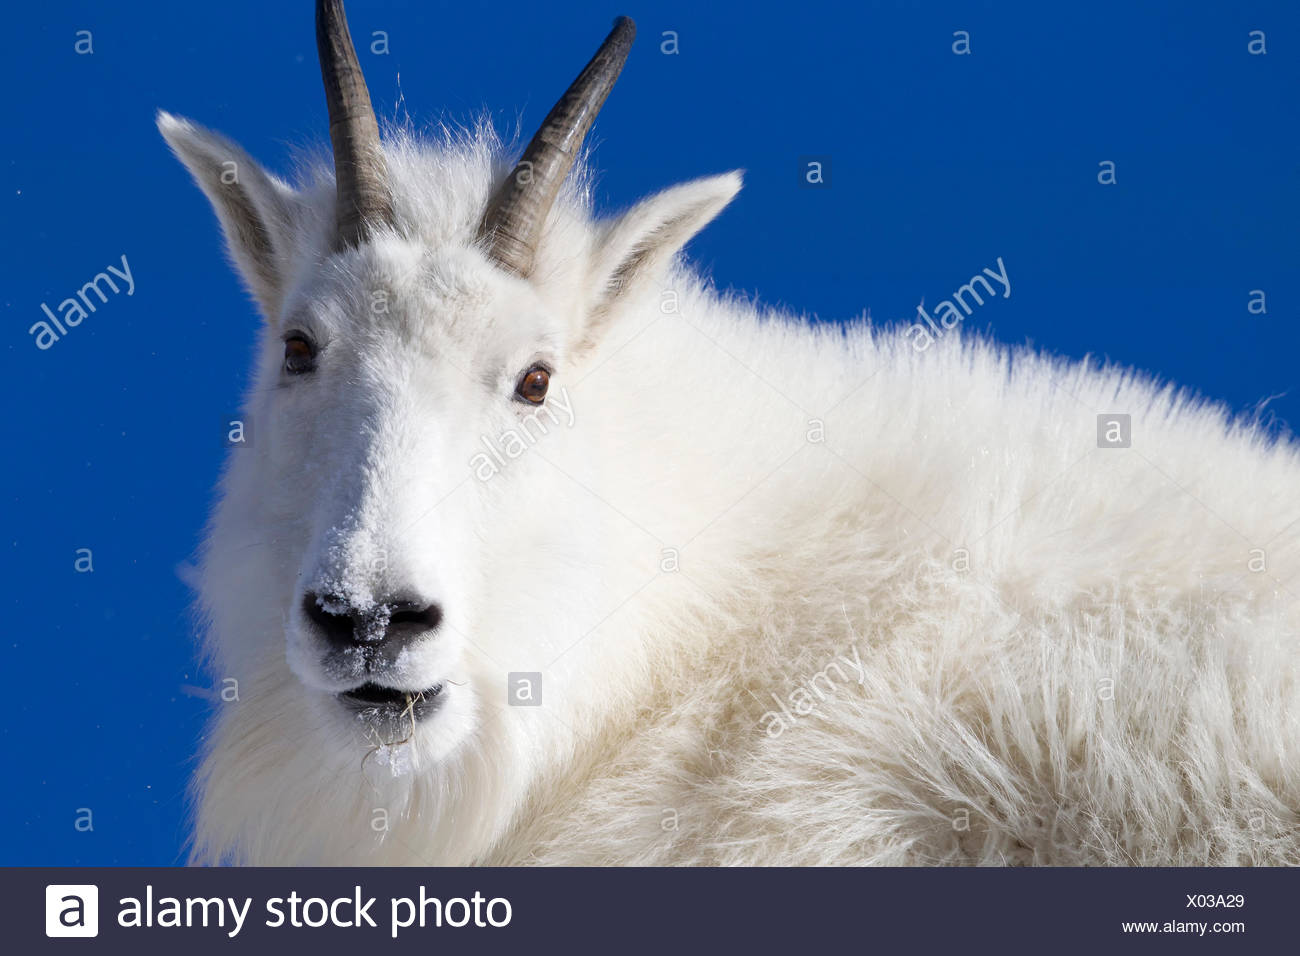 Close up portrait of a mountain goat, Oreamnos americanus, with thick fur. - Stock Image